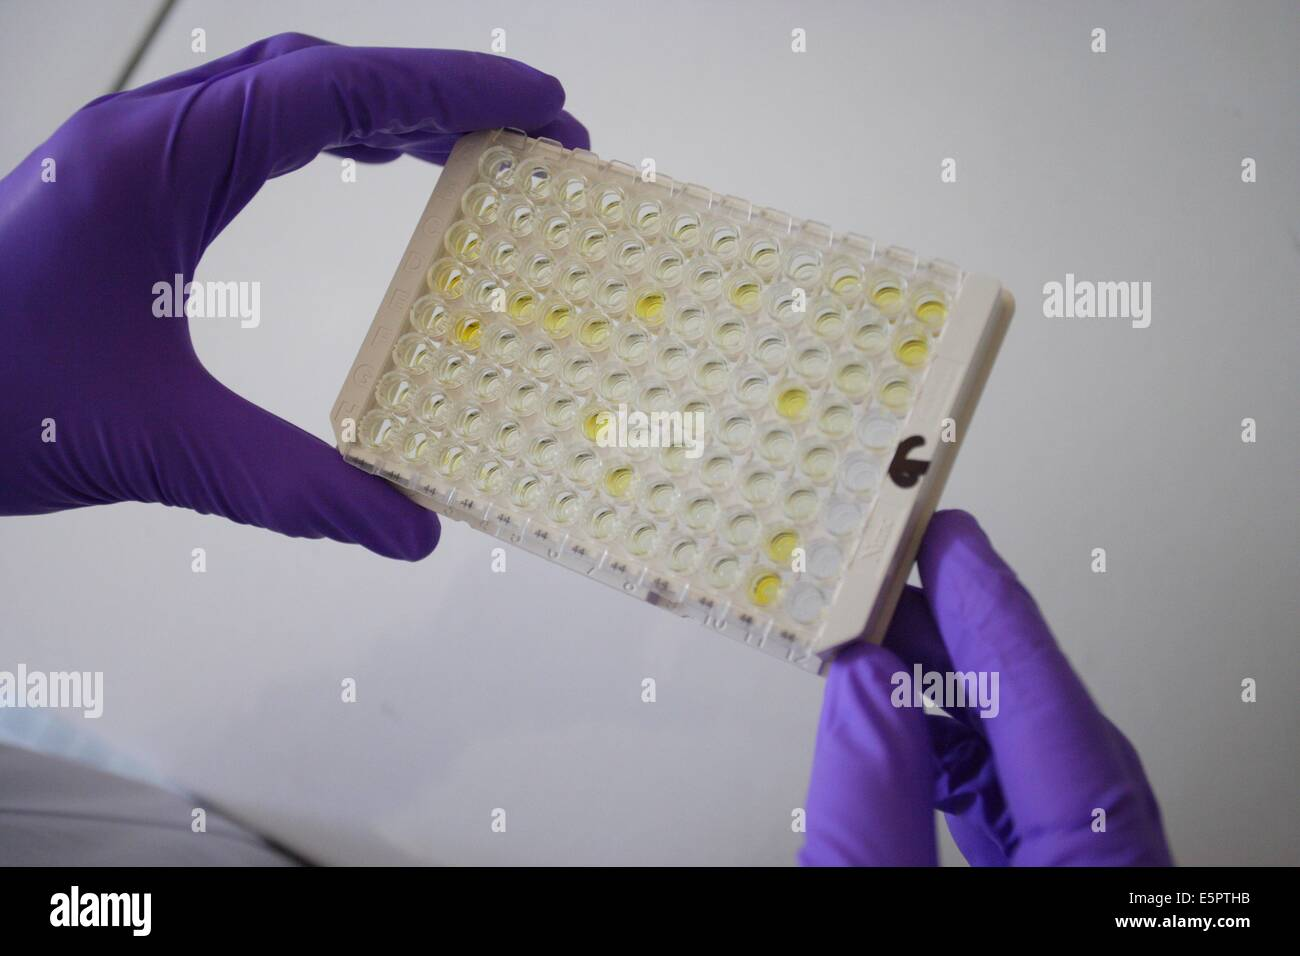 ELISA test plate used for serologic testing, research of antibodies and antigens in the blood. - Stock Image